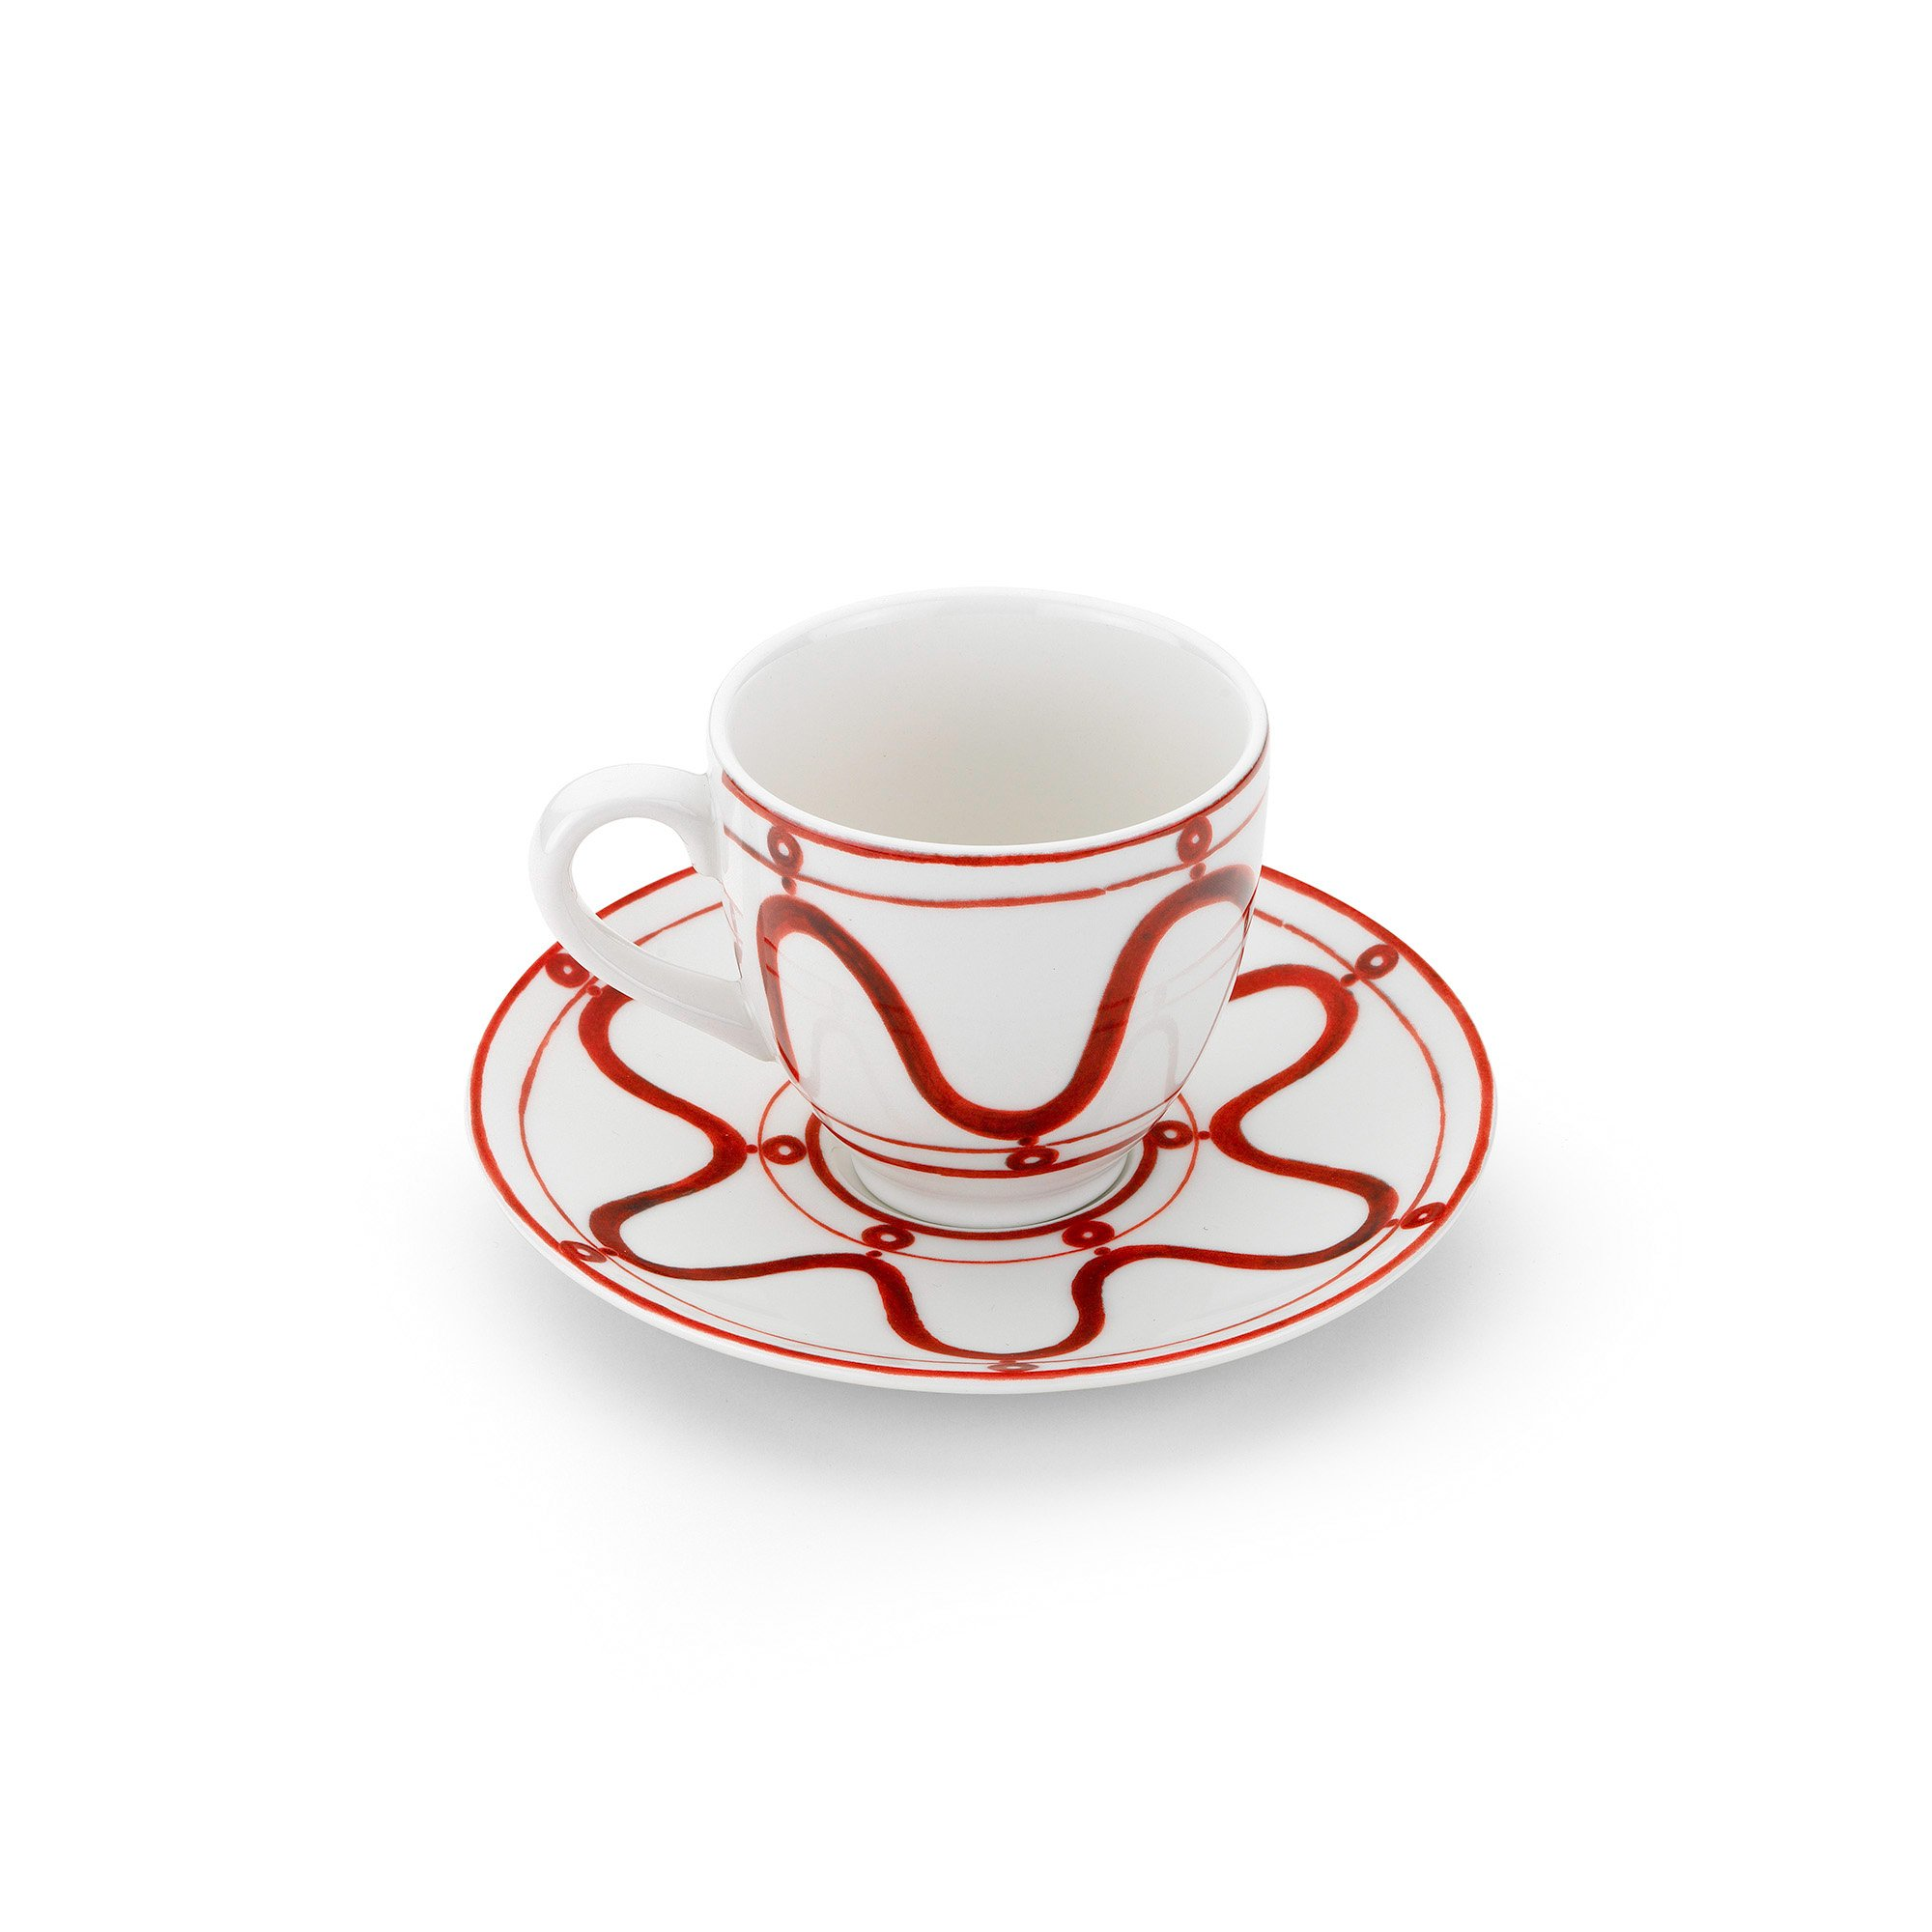 Serenity Burgundy on White Coffee or Tea Cup